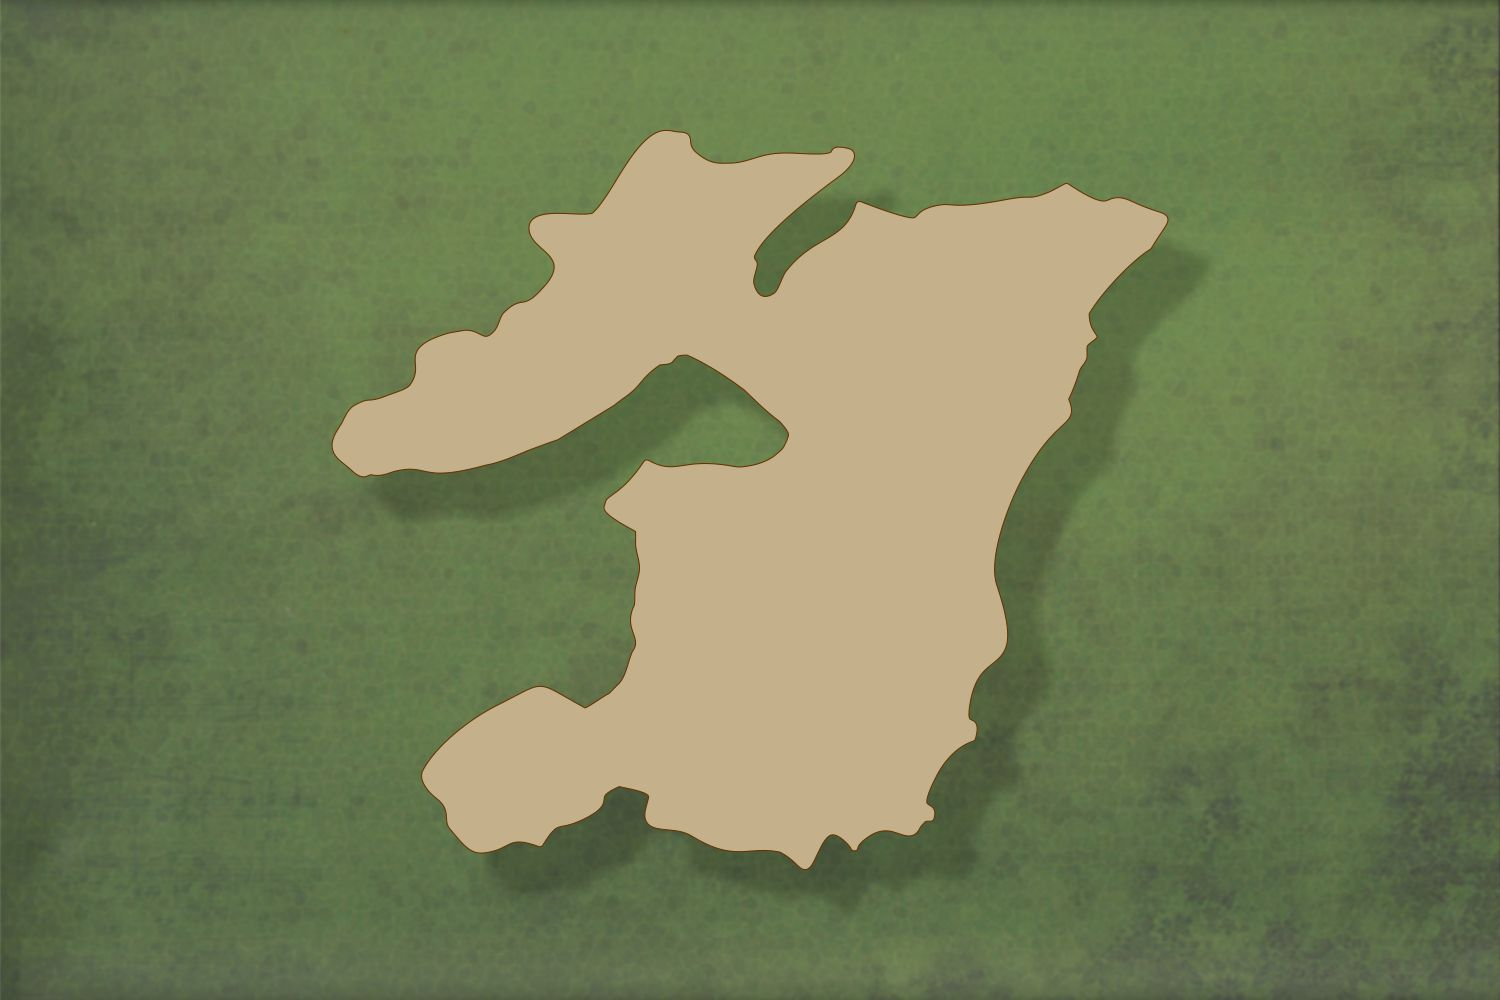 Laser cut, blank wooden Isle of Islay shape for craft